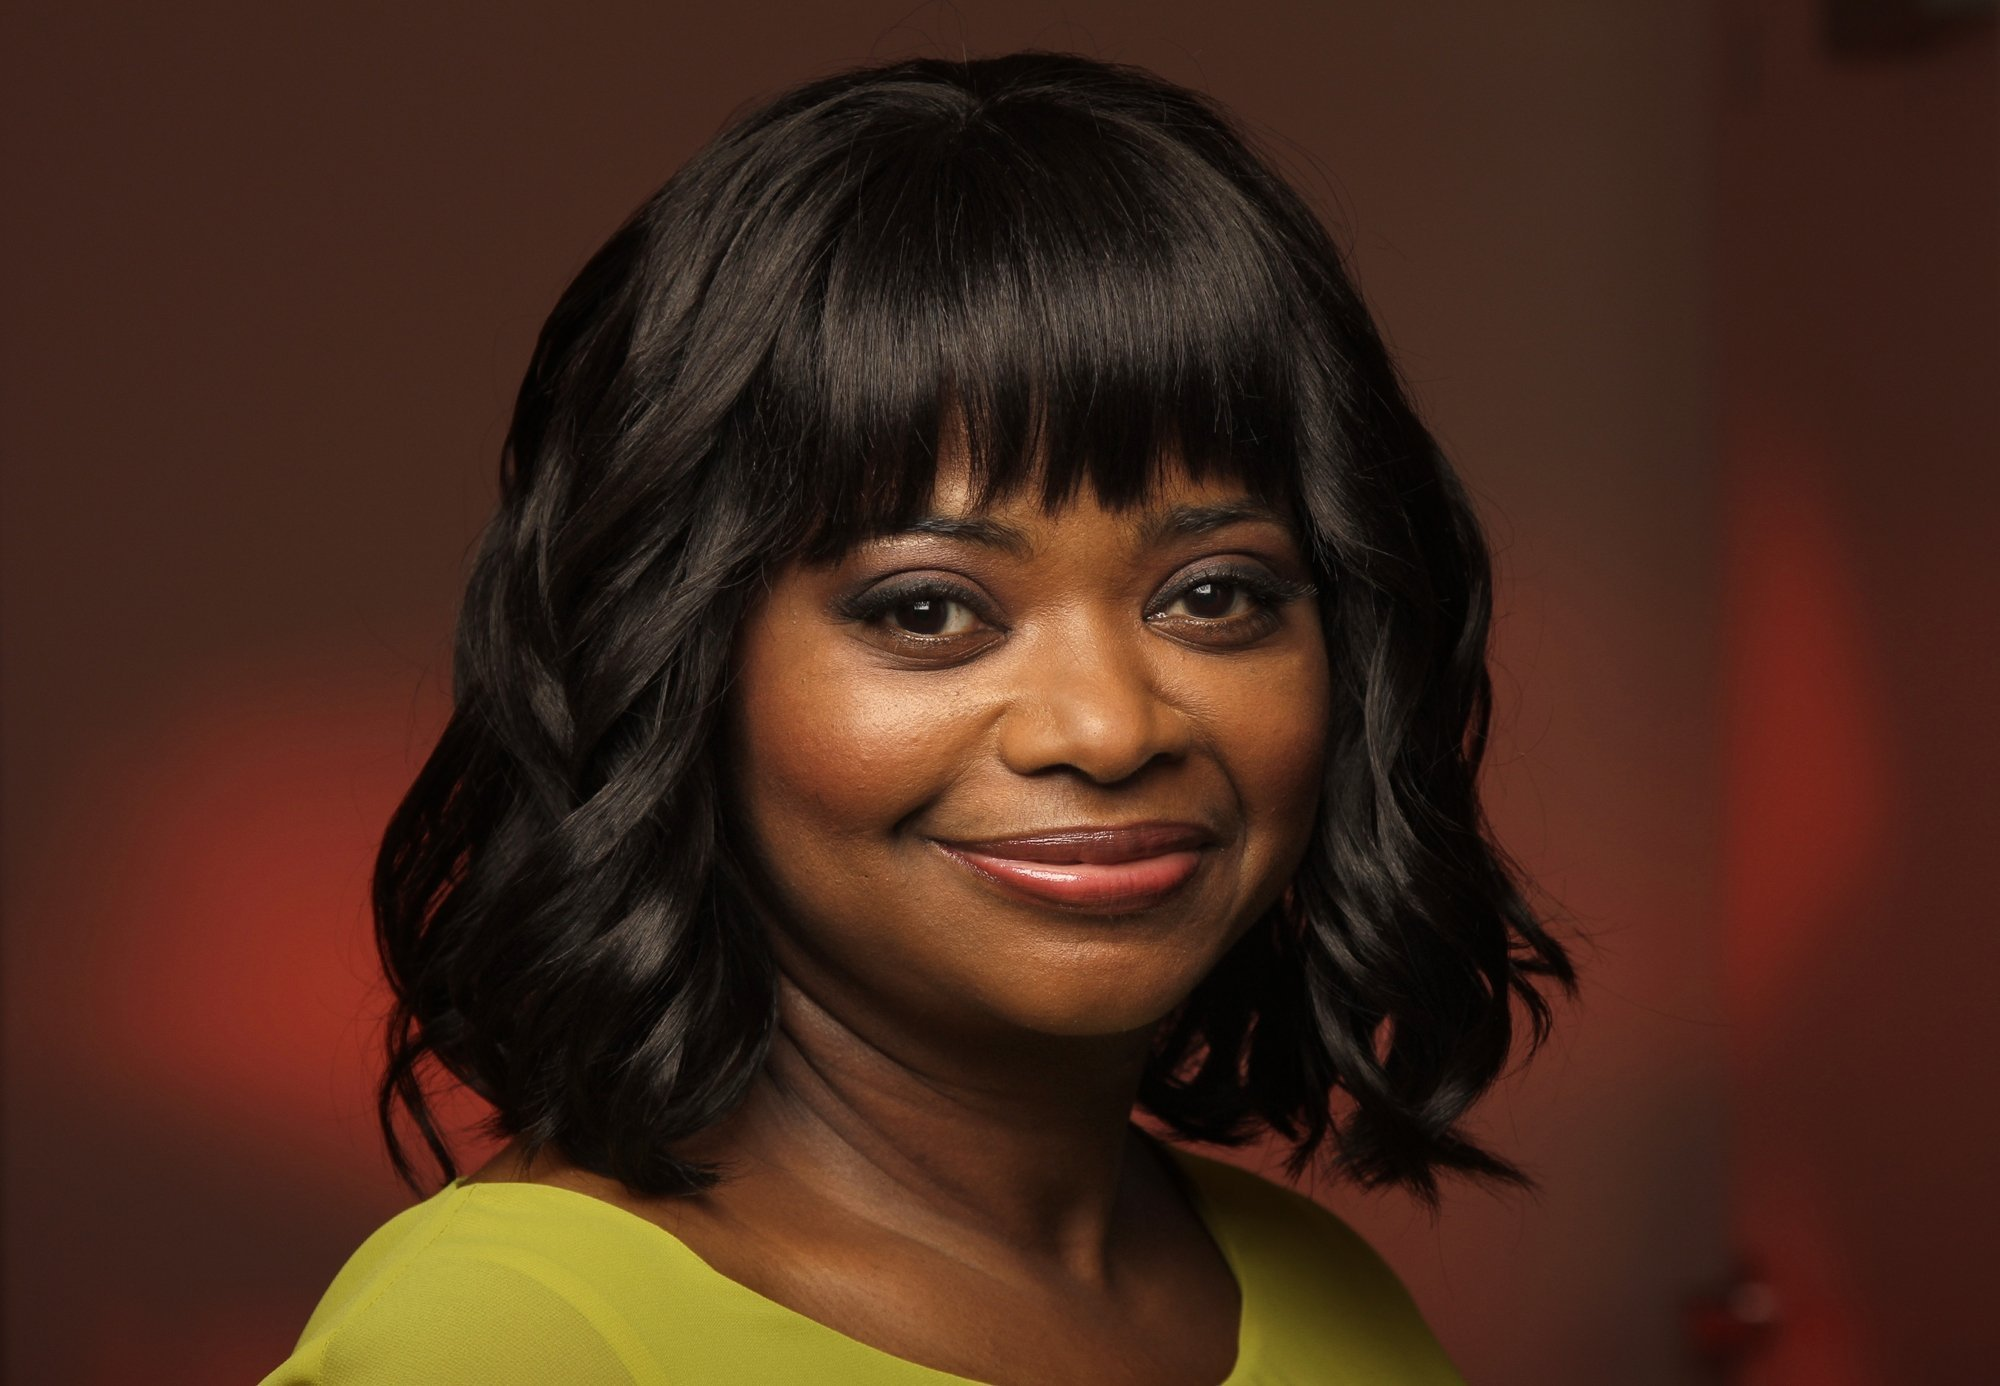 Octavia-Spencer-black-women-bob-hairstyles-2017